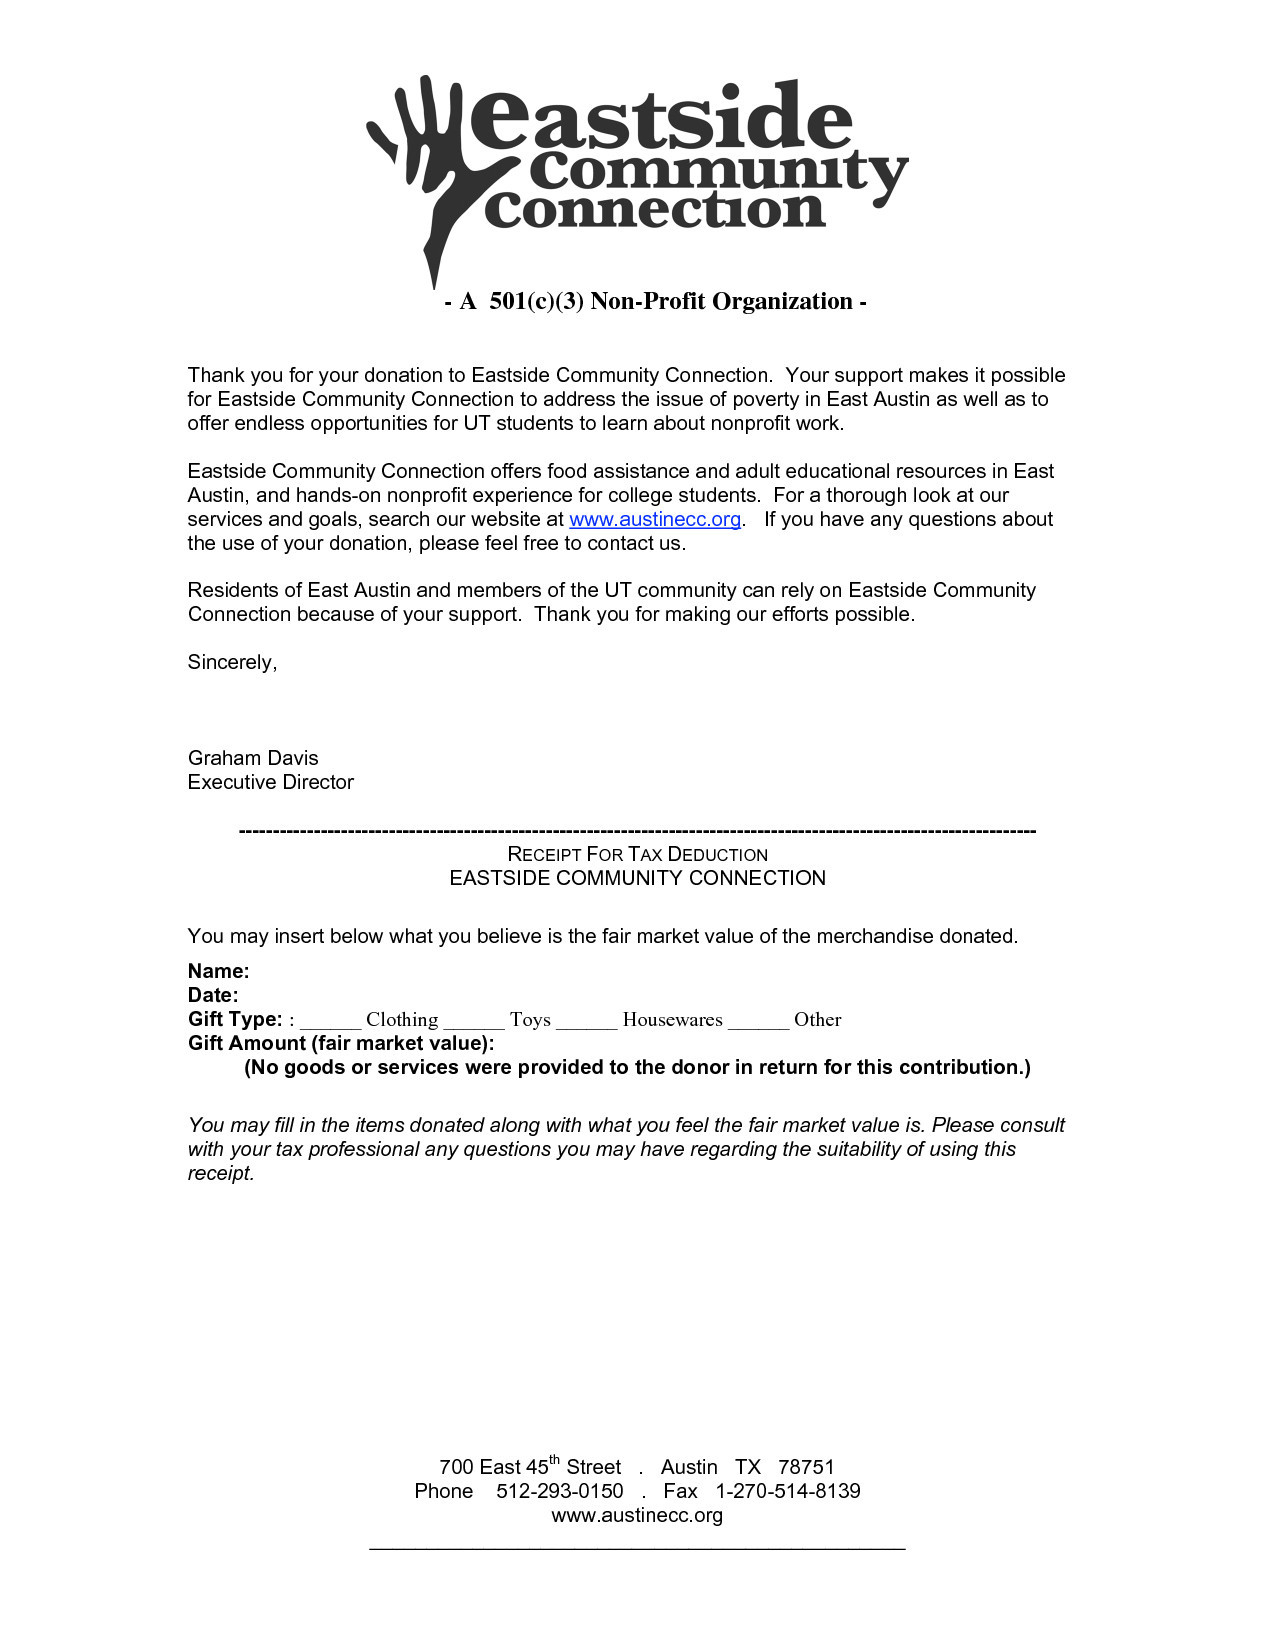 Donation Letter Template for Non Profit organization - Exceptional Tax Donation Letter Template